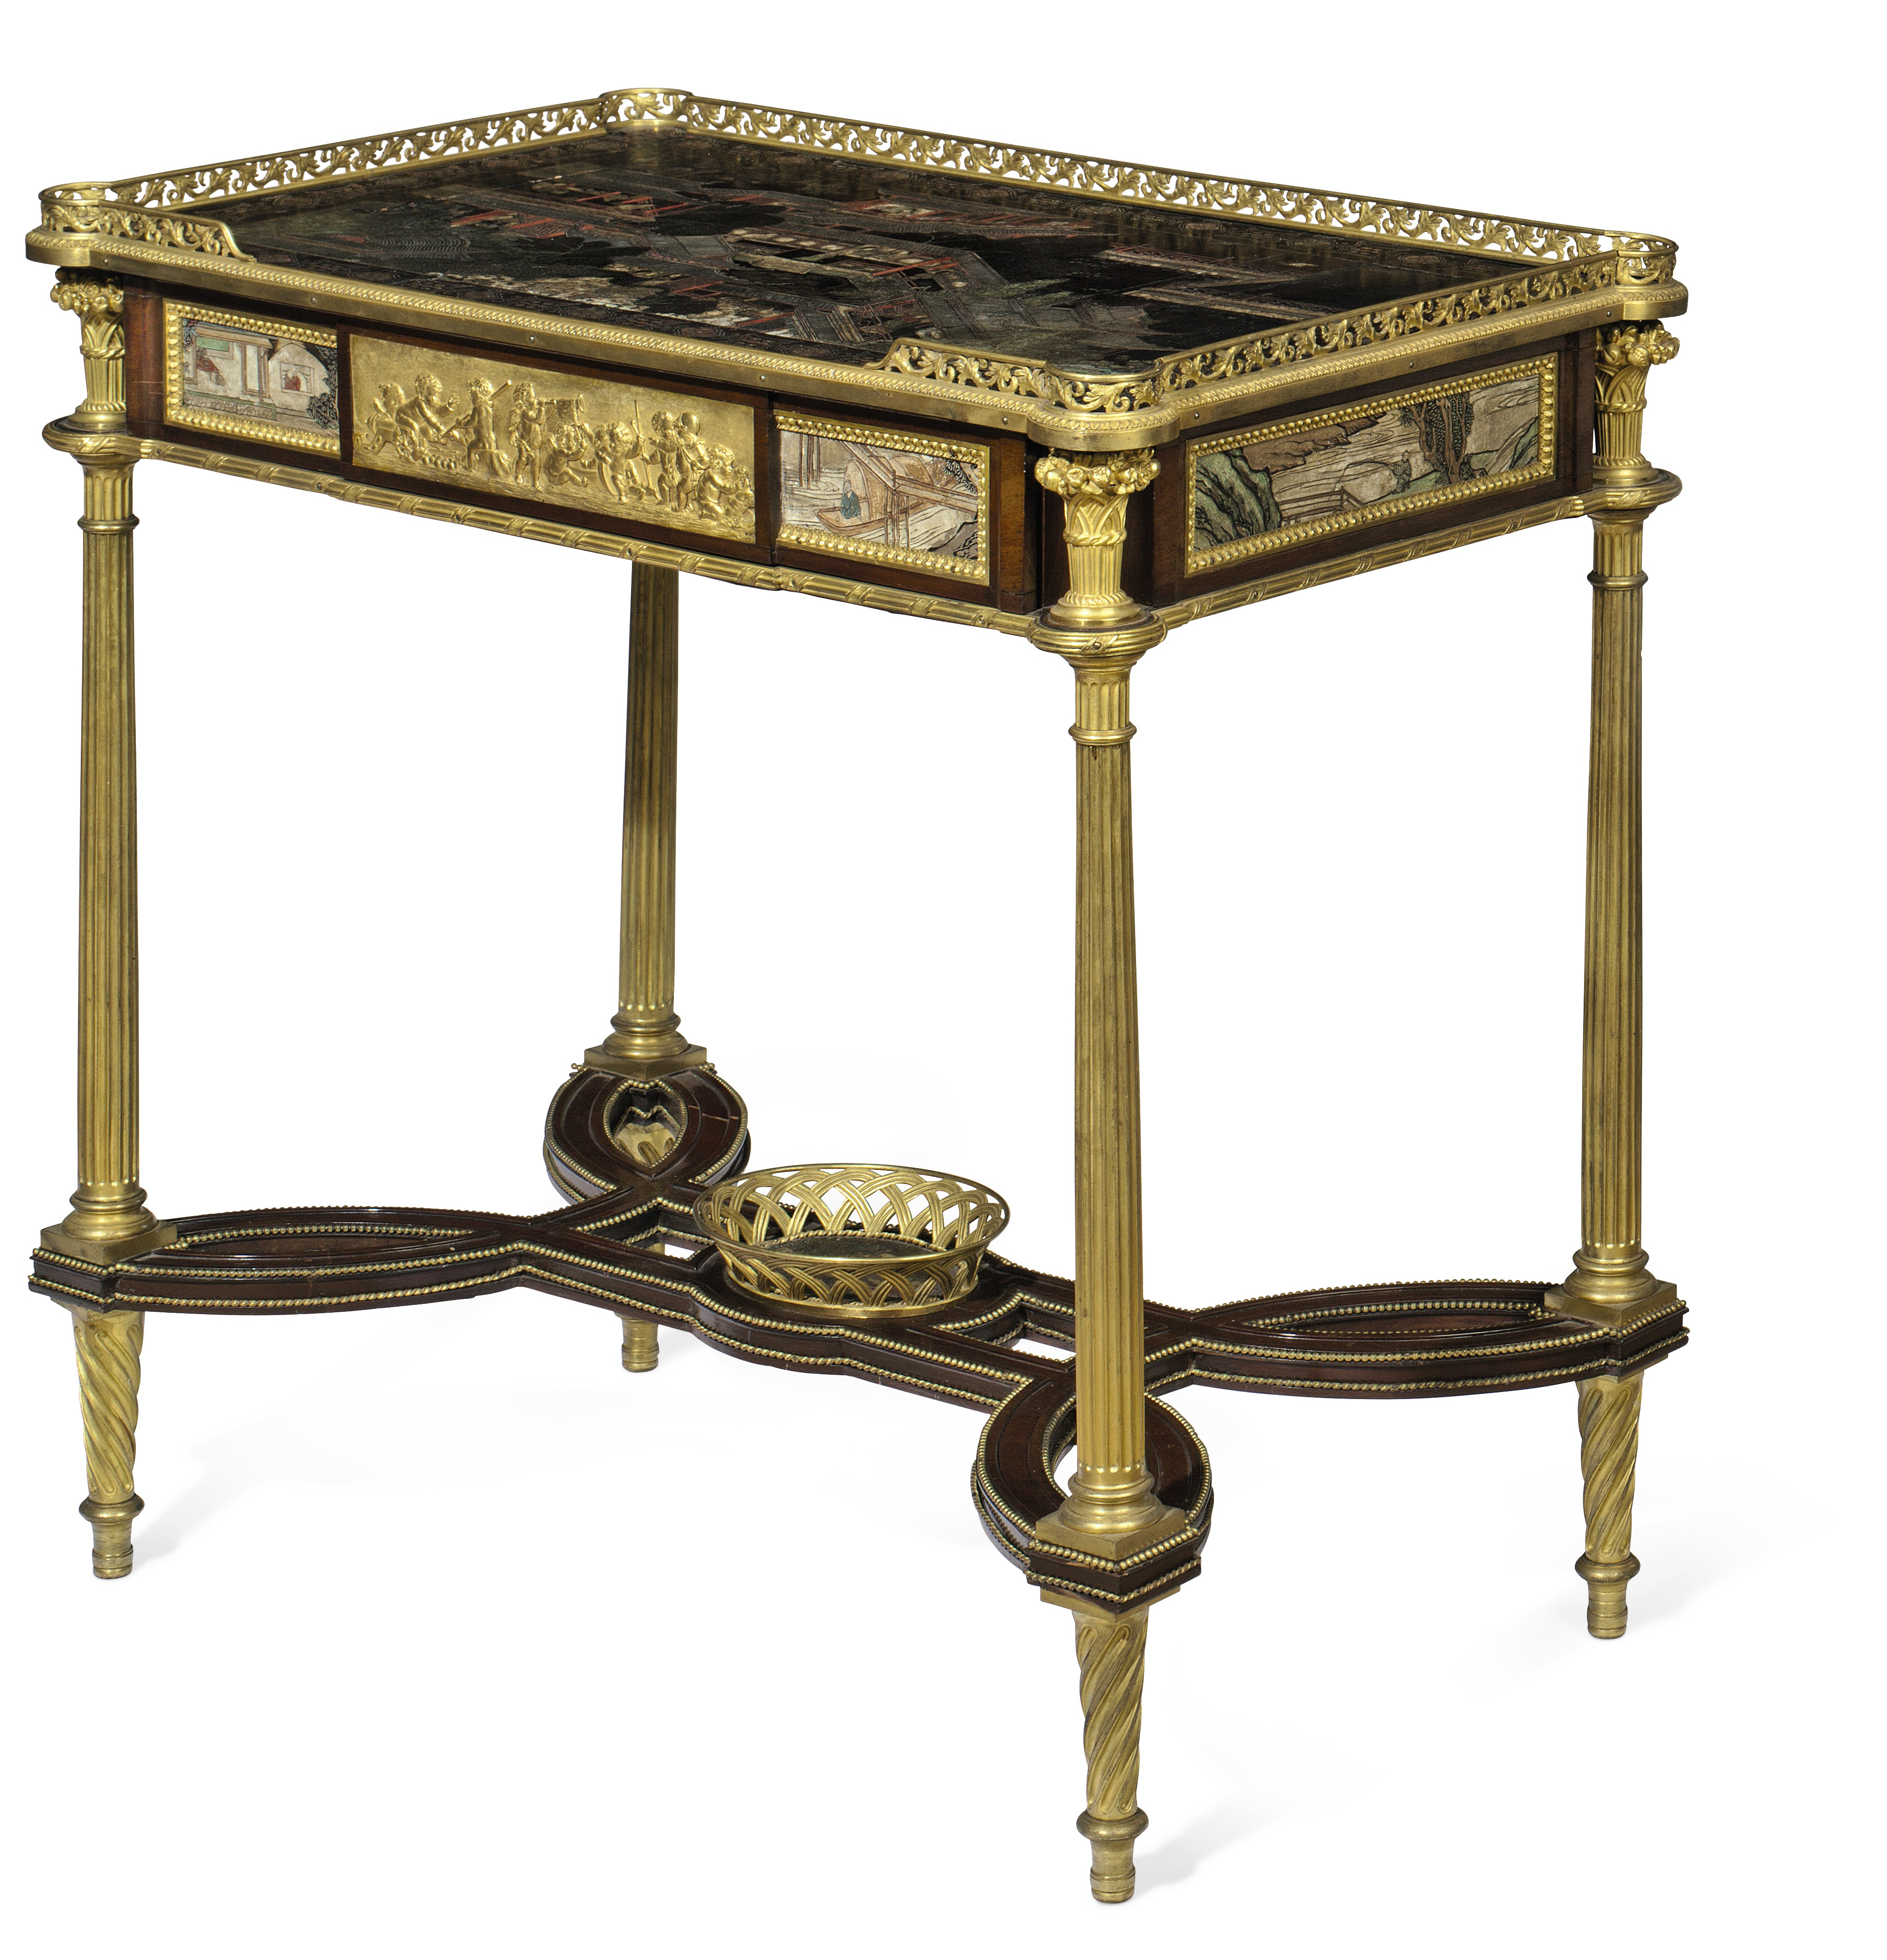 A FRENCH ORMOLU AND COROMANDEL LACQUER-MOUNTED MAHOGANY ...